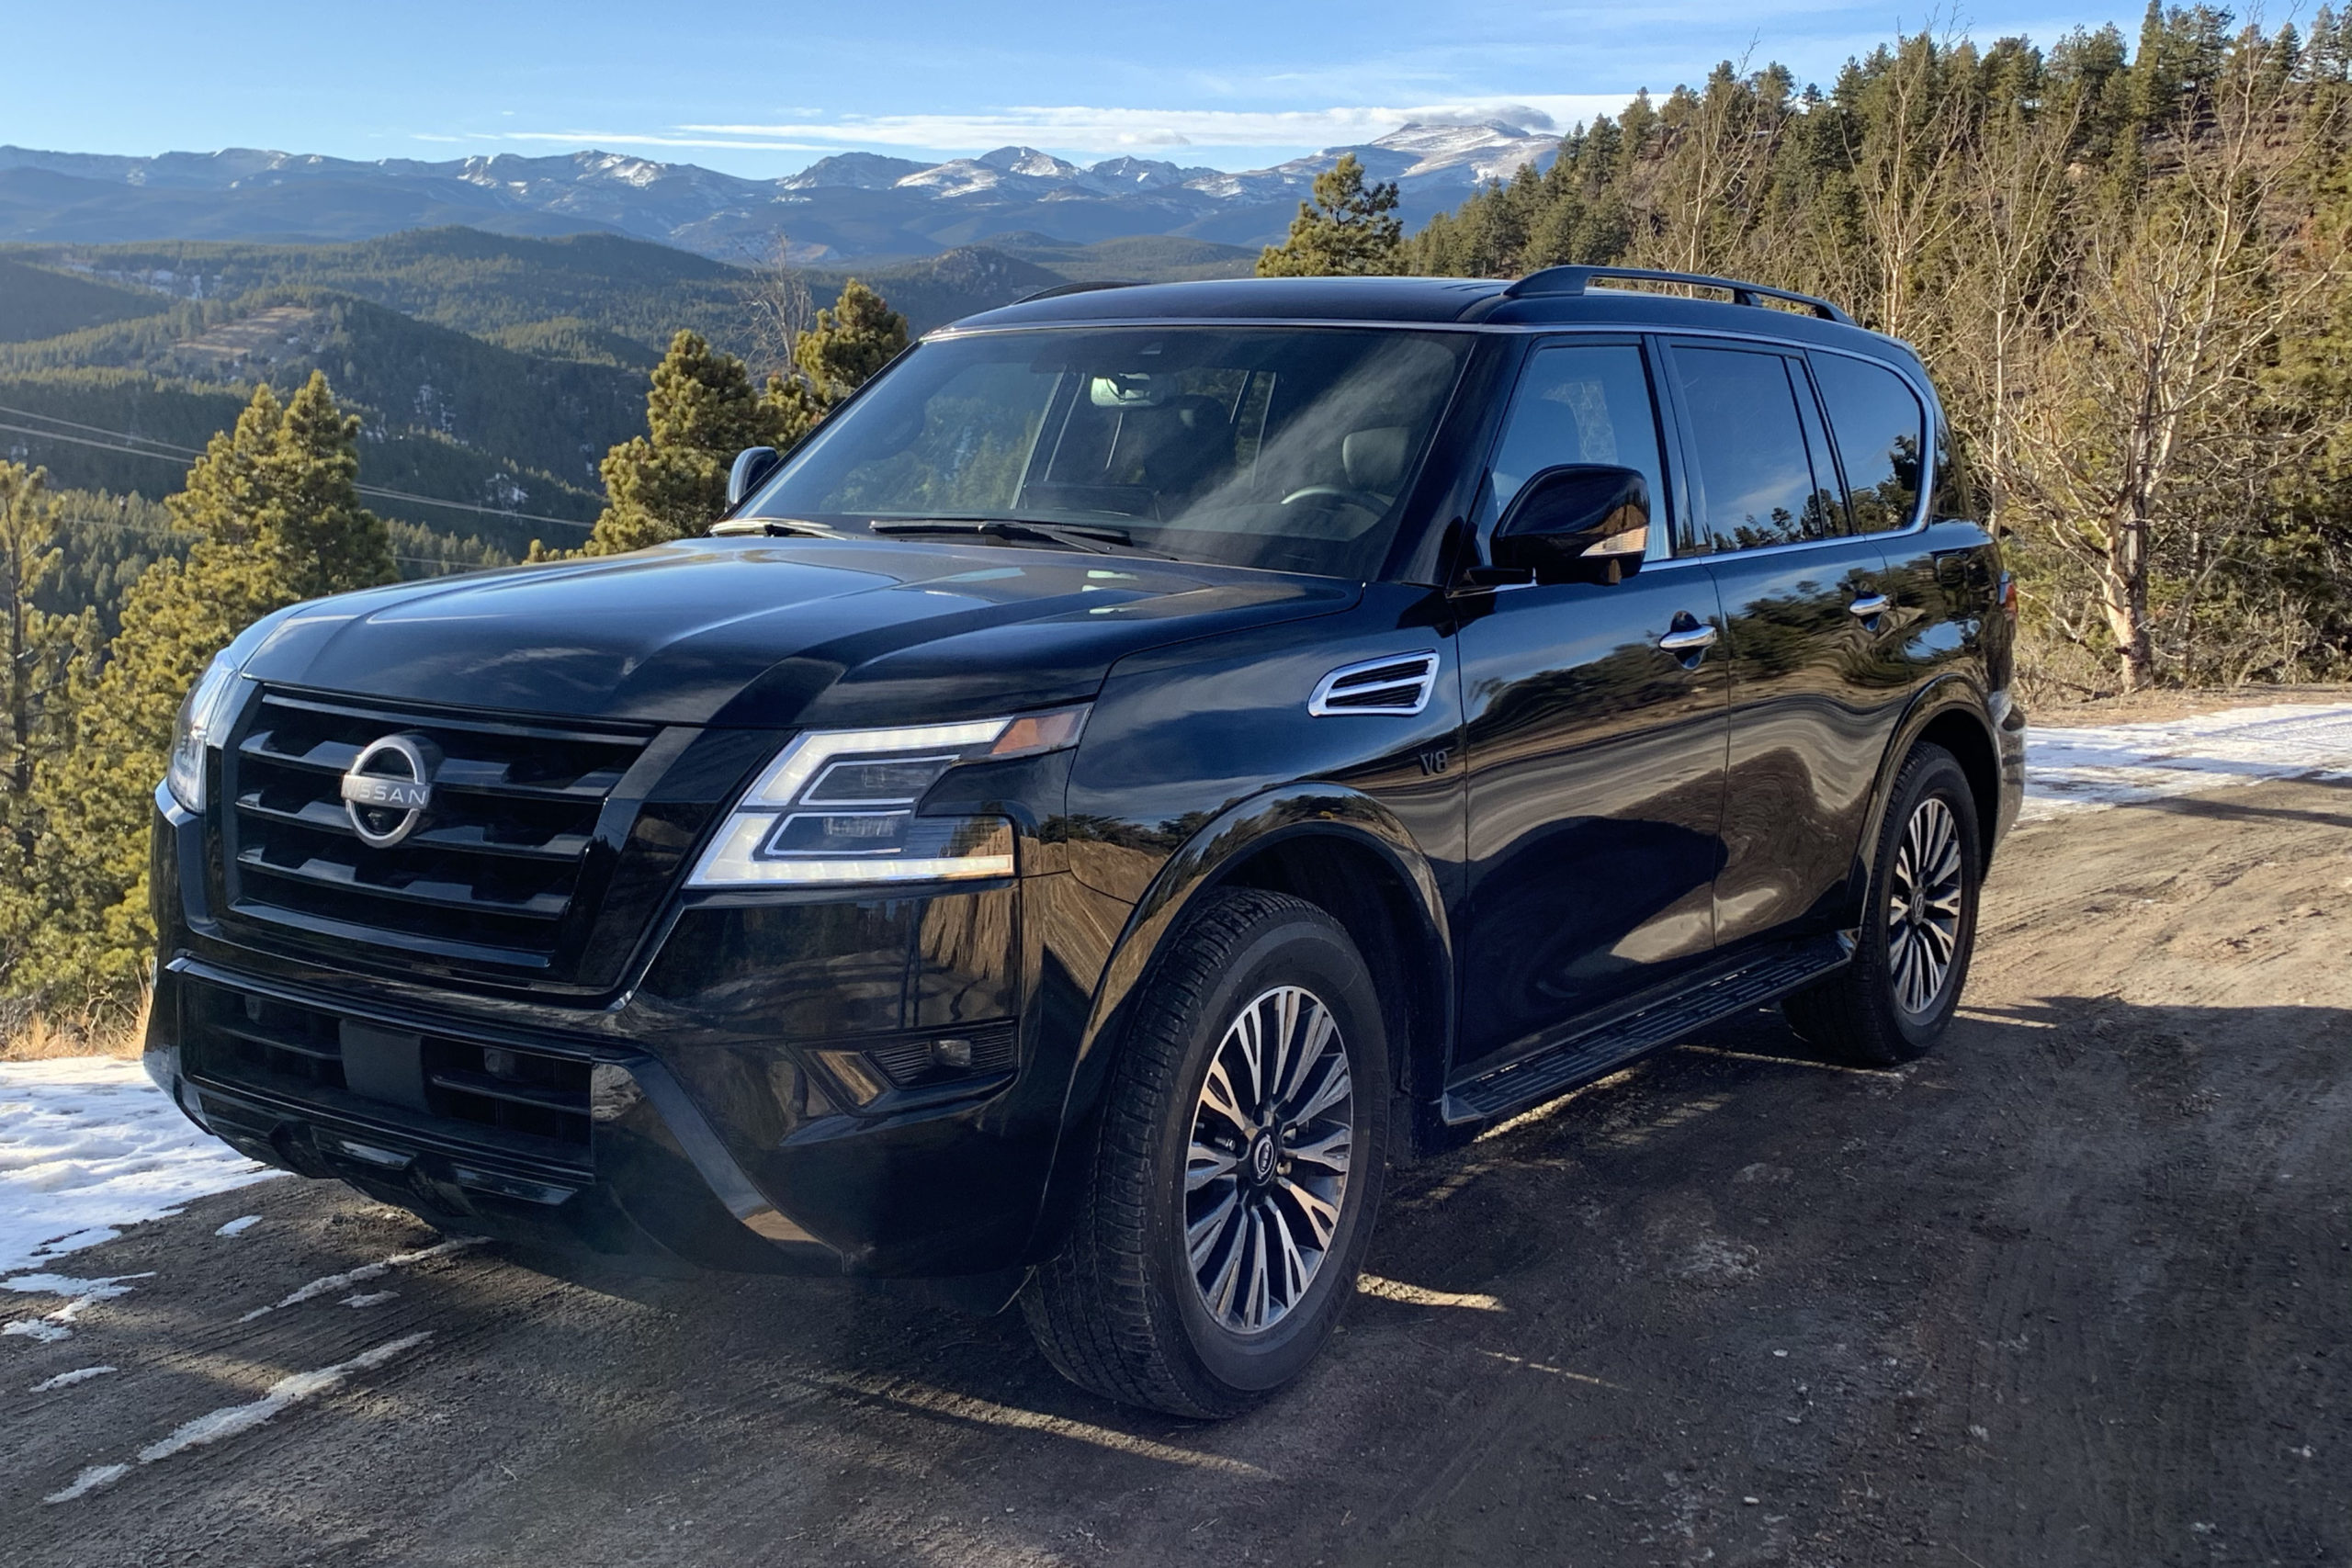 best SUV for off-roading